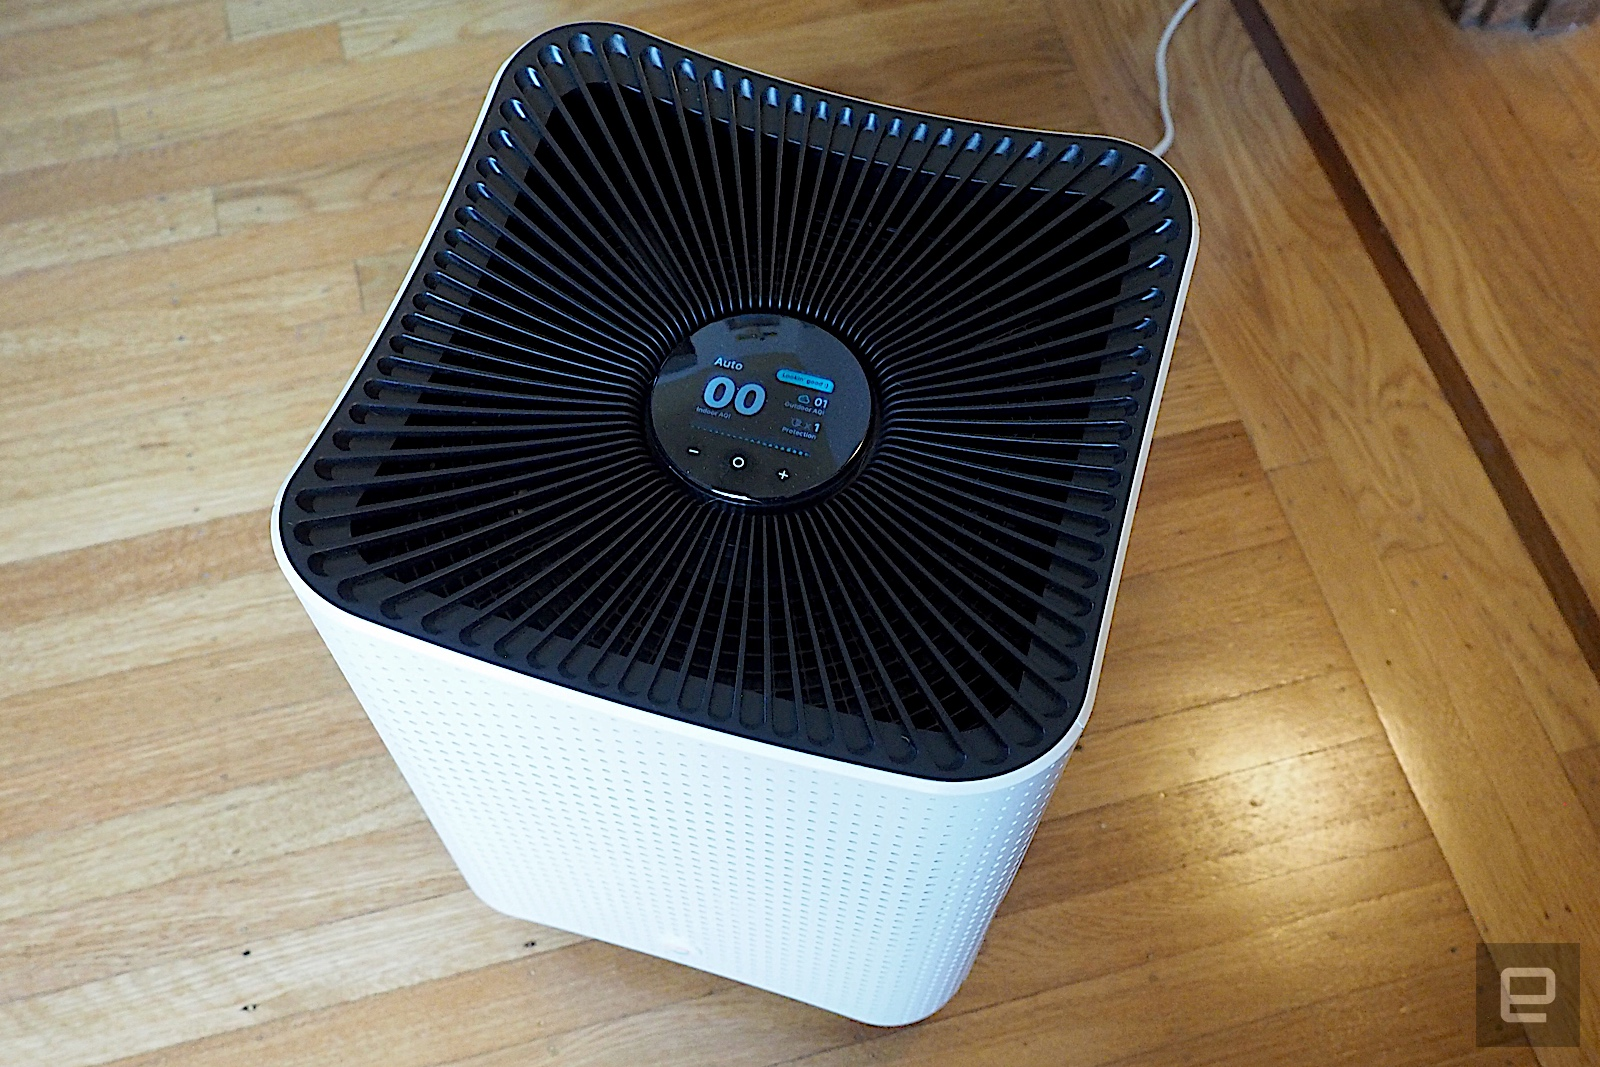 Mila hands-on: Much smarter (and pricier) than your average air purifier